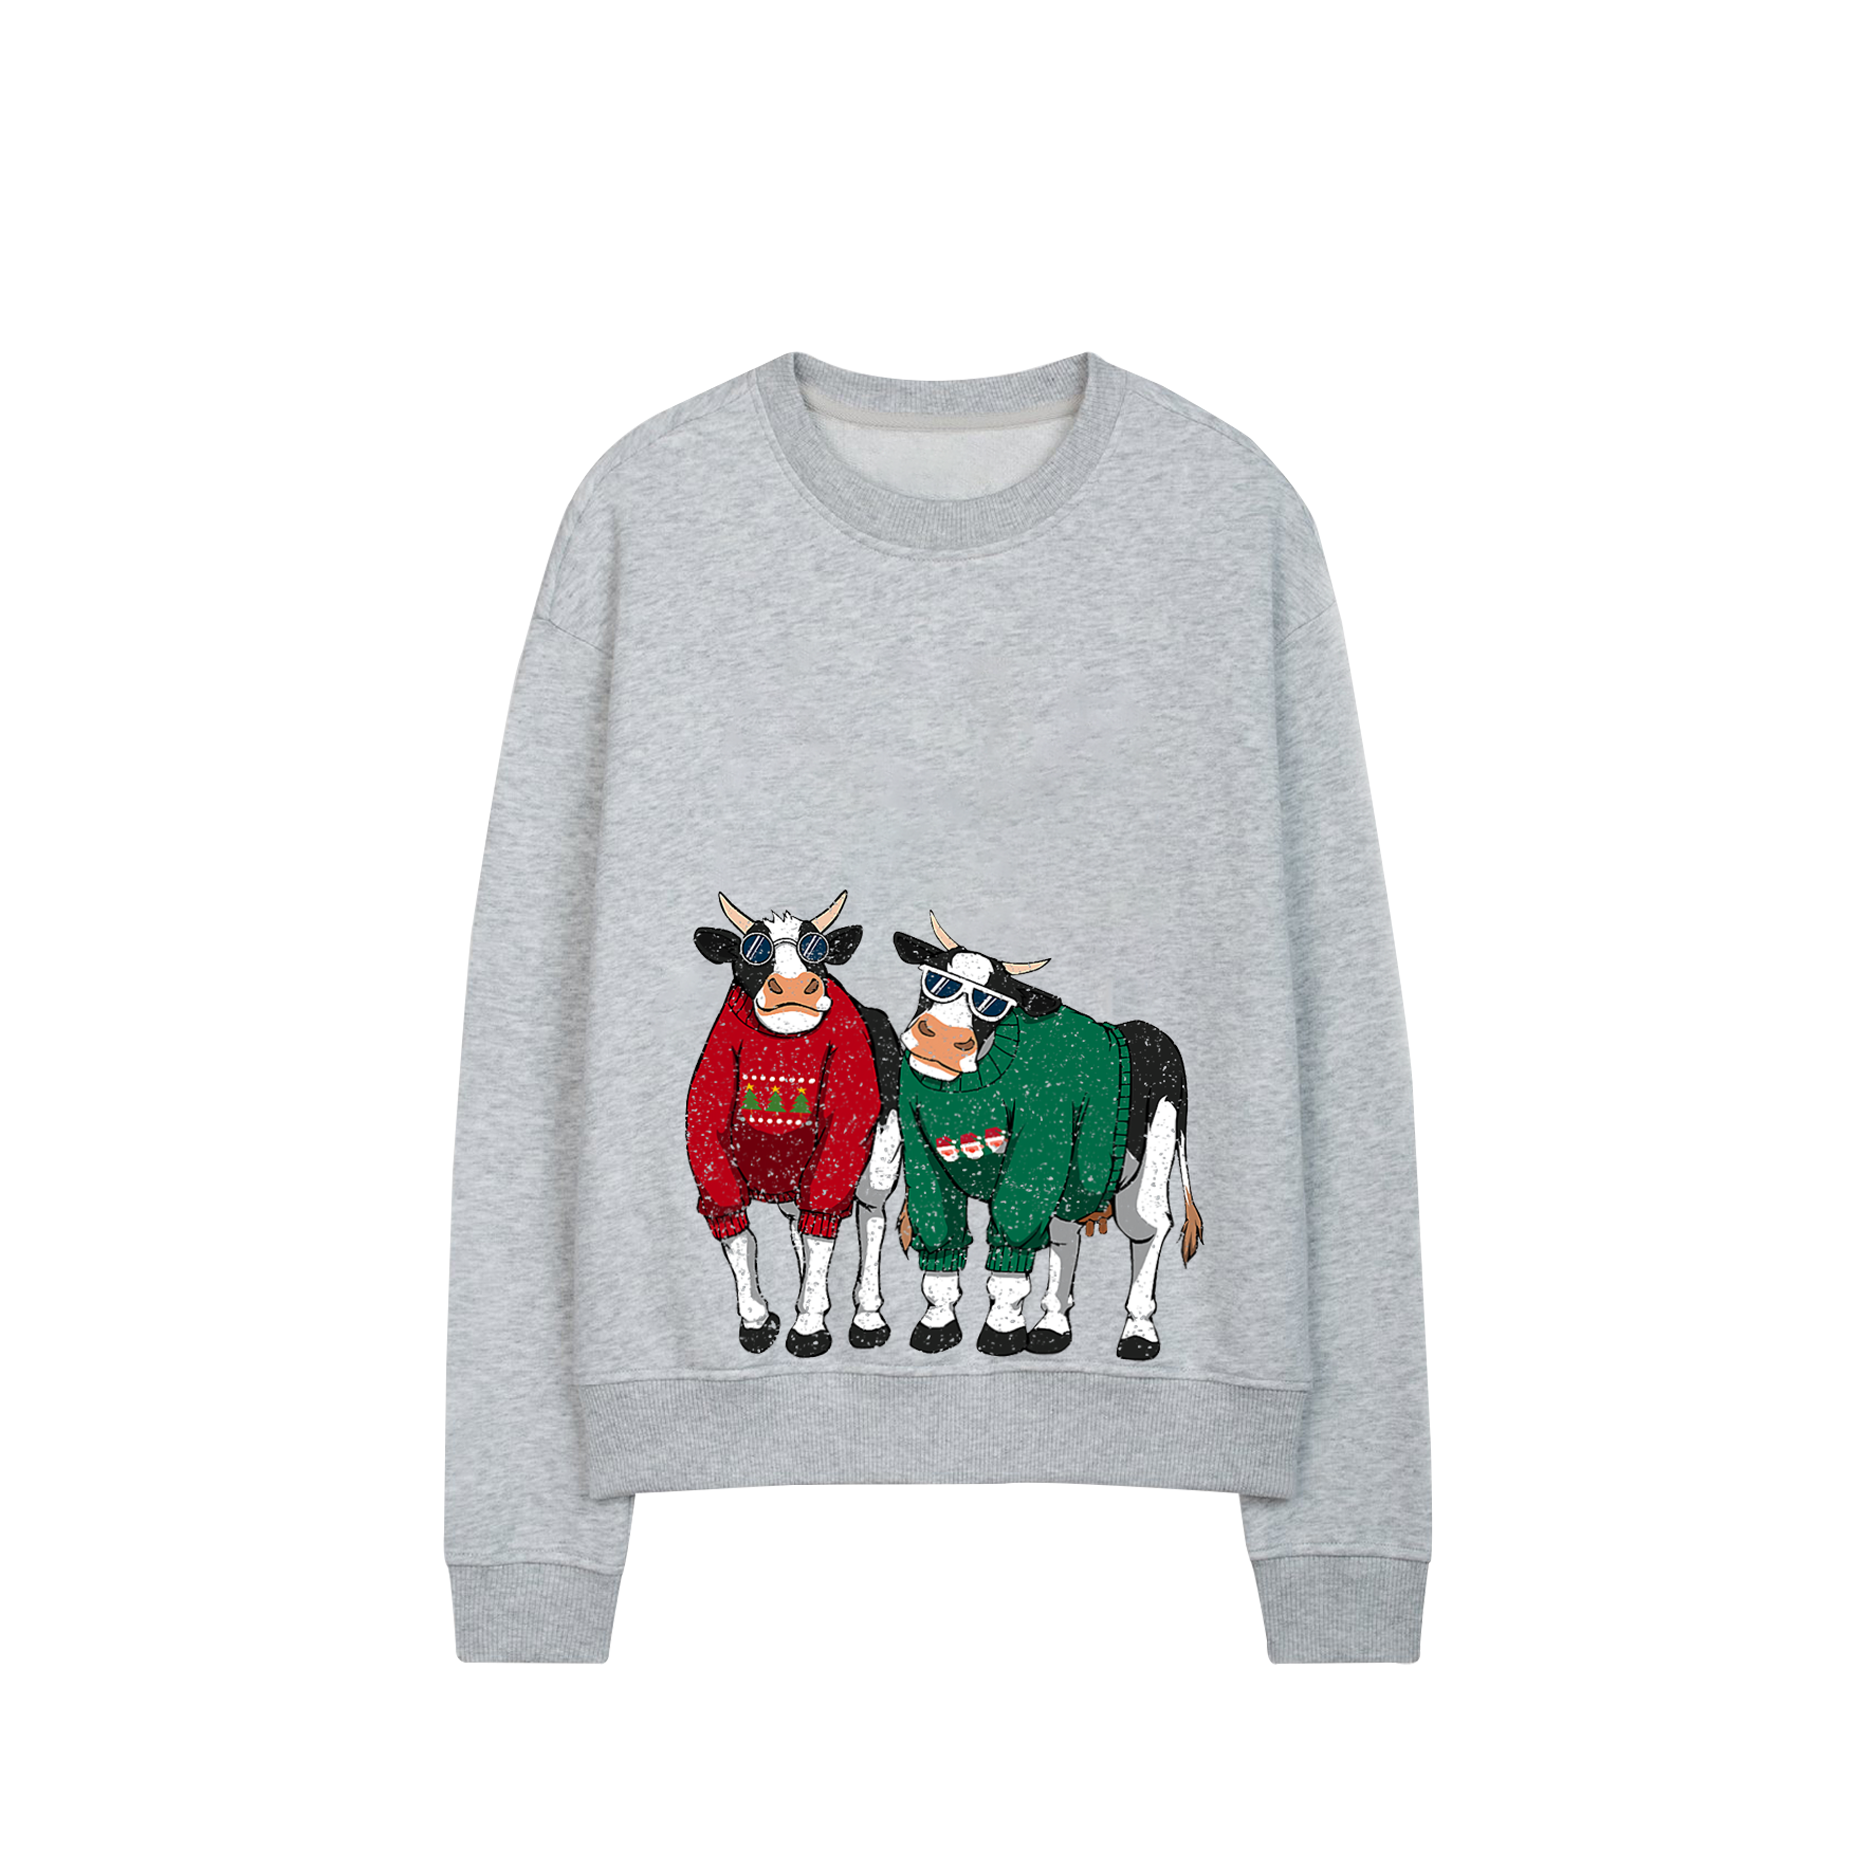 Áo Sweater Merry Christmas xám